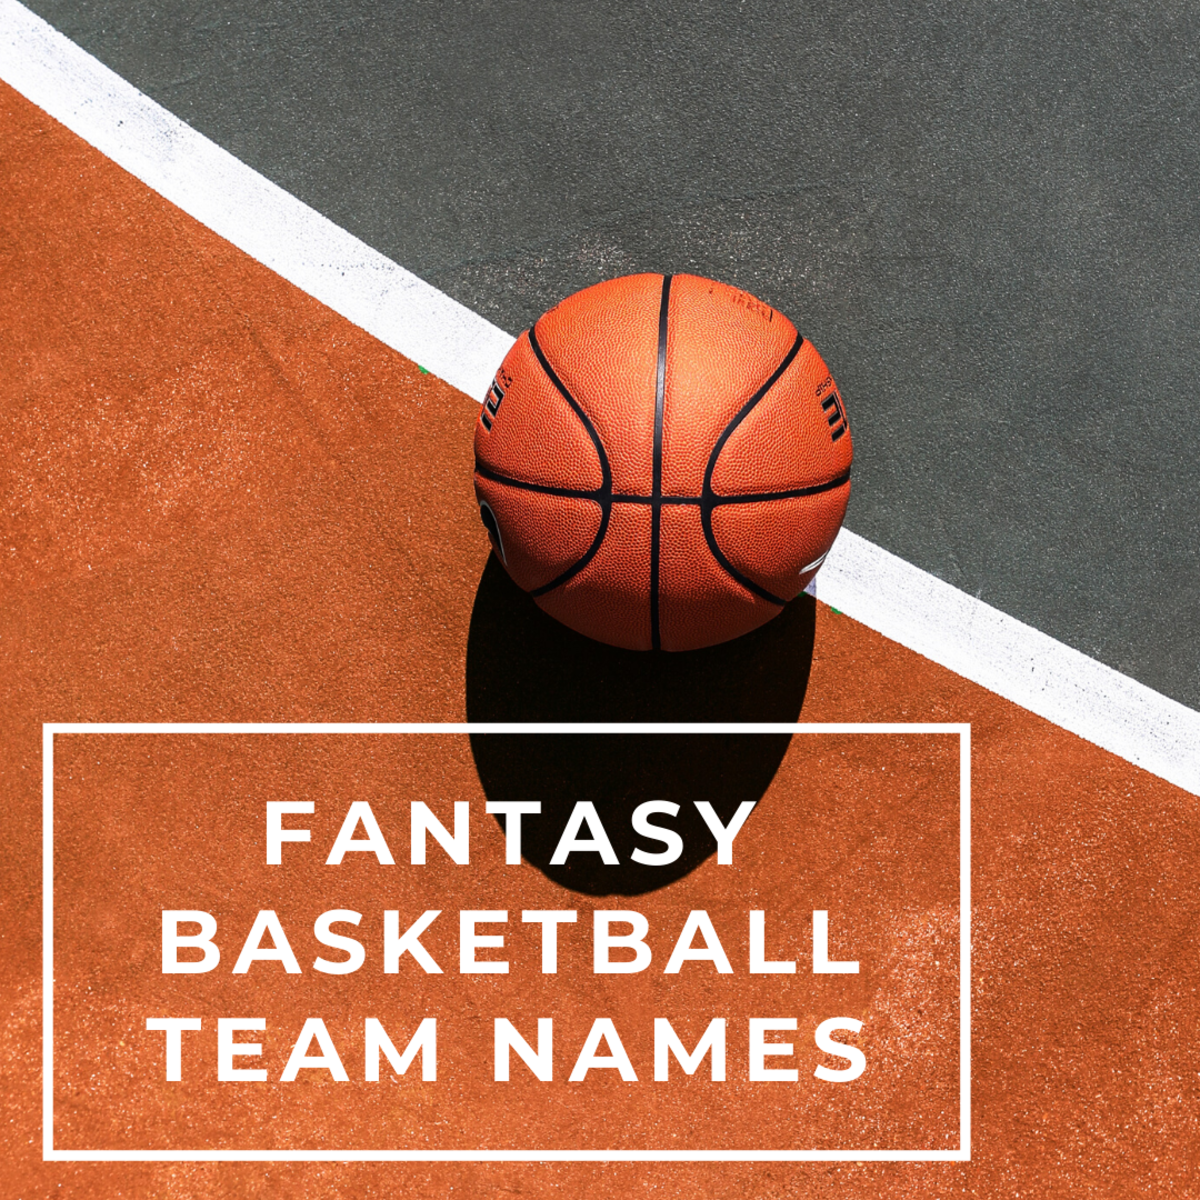 200 Funny and Clever Fantasy Basketball Team Names